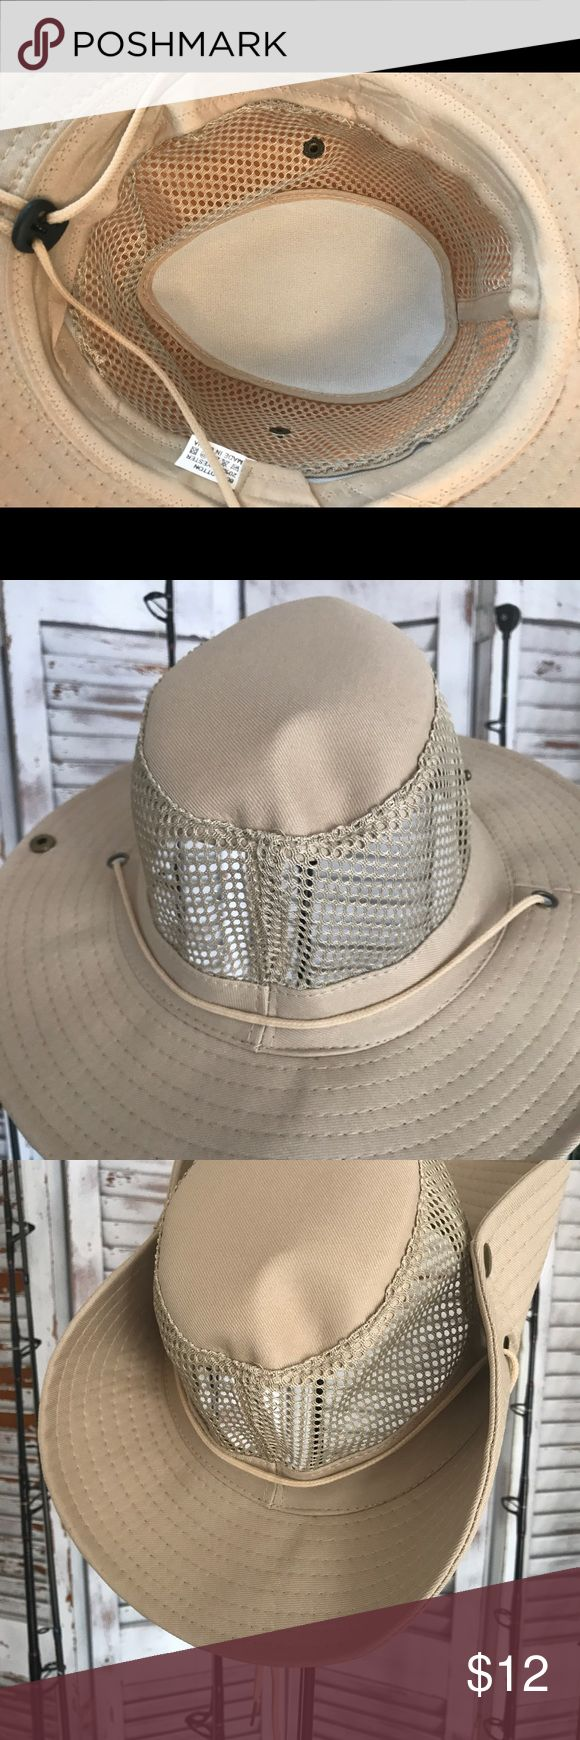 Men's Sun Hat 100% polyester beige hats fits all medium or large. Perfect for any outdoors activities. New Accessories Hats